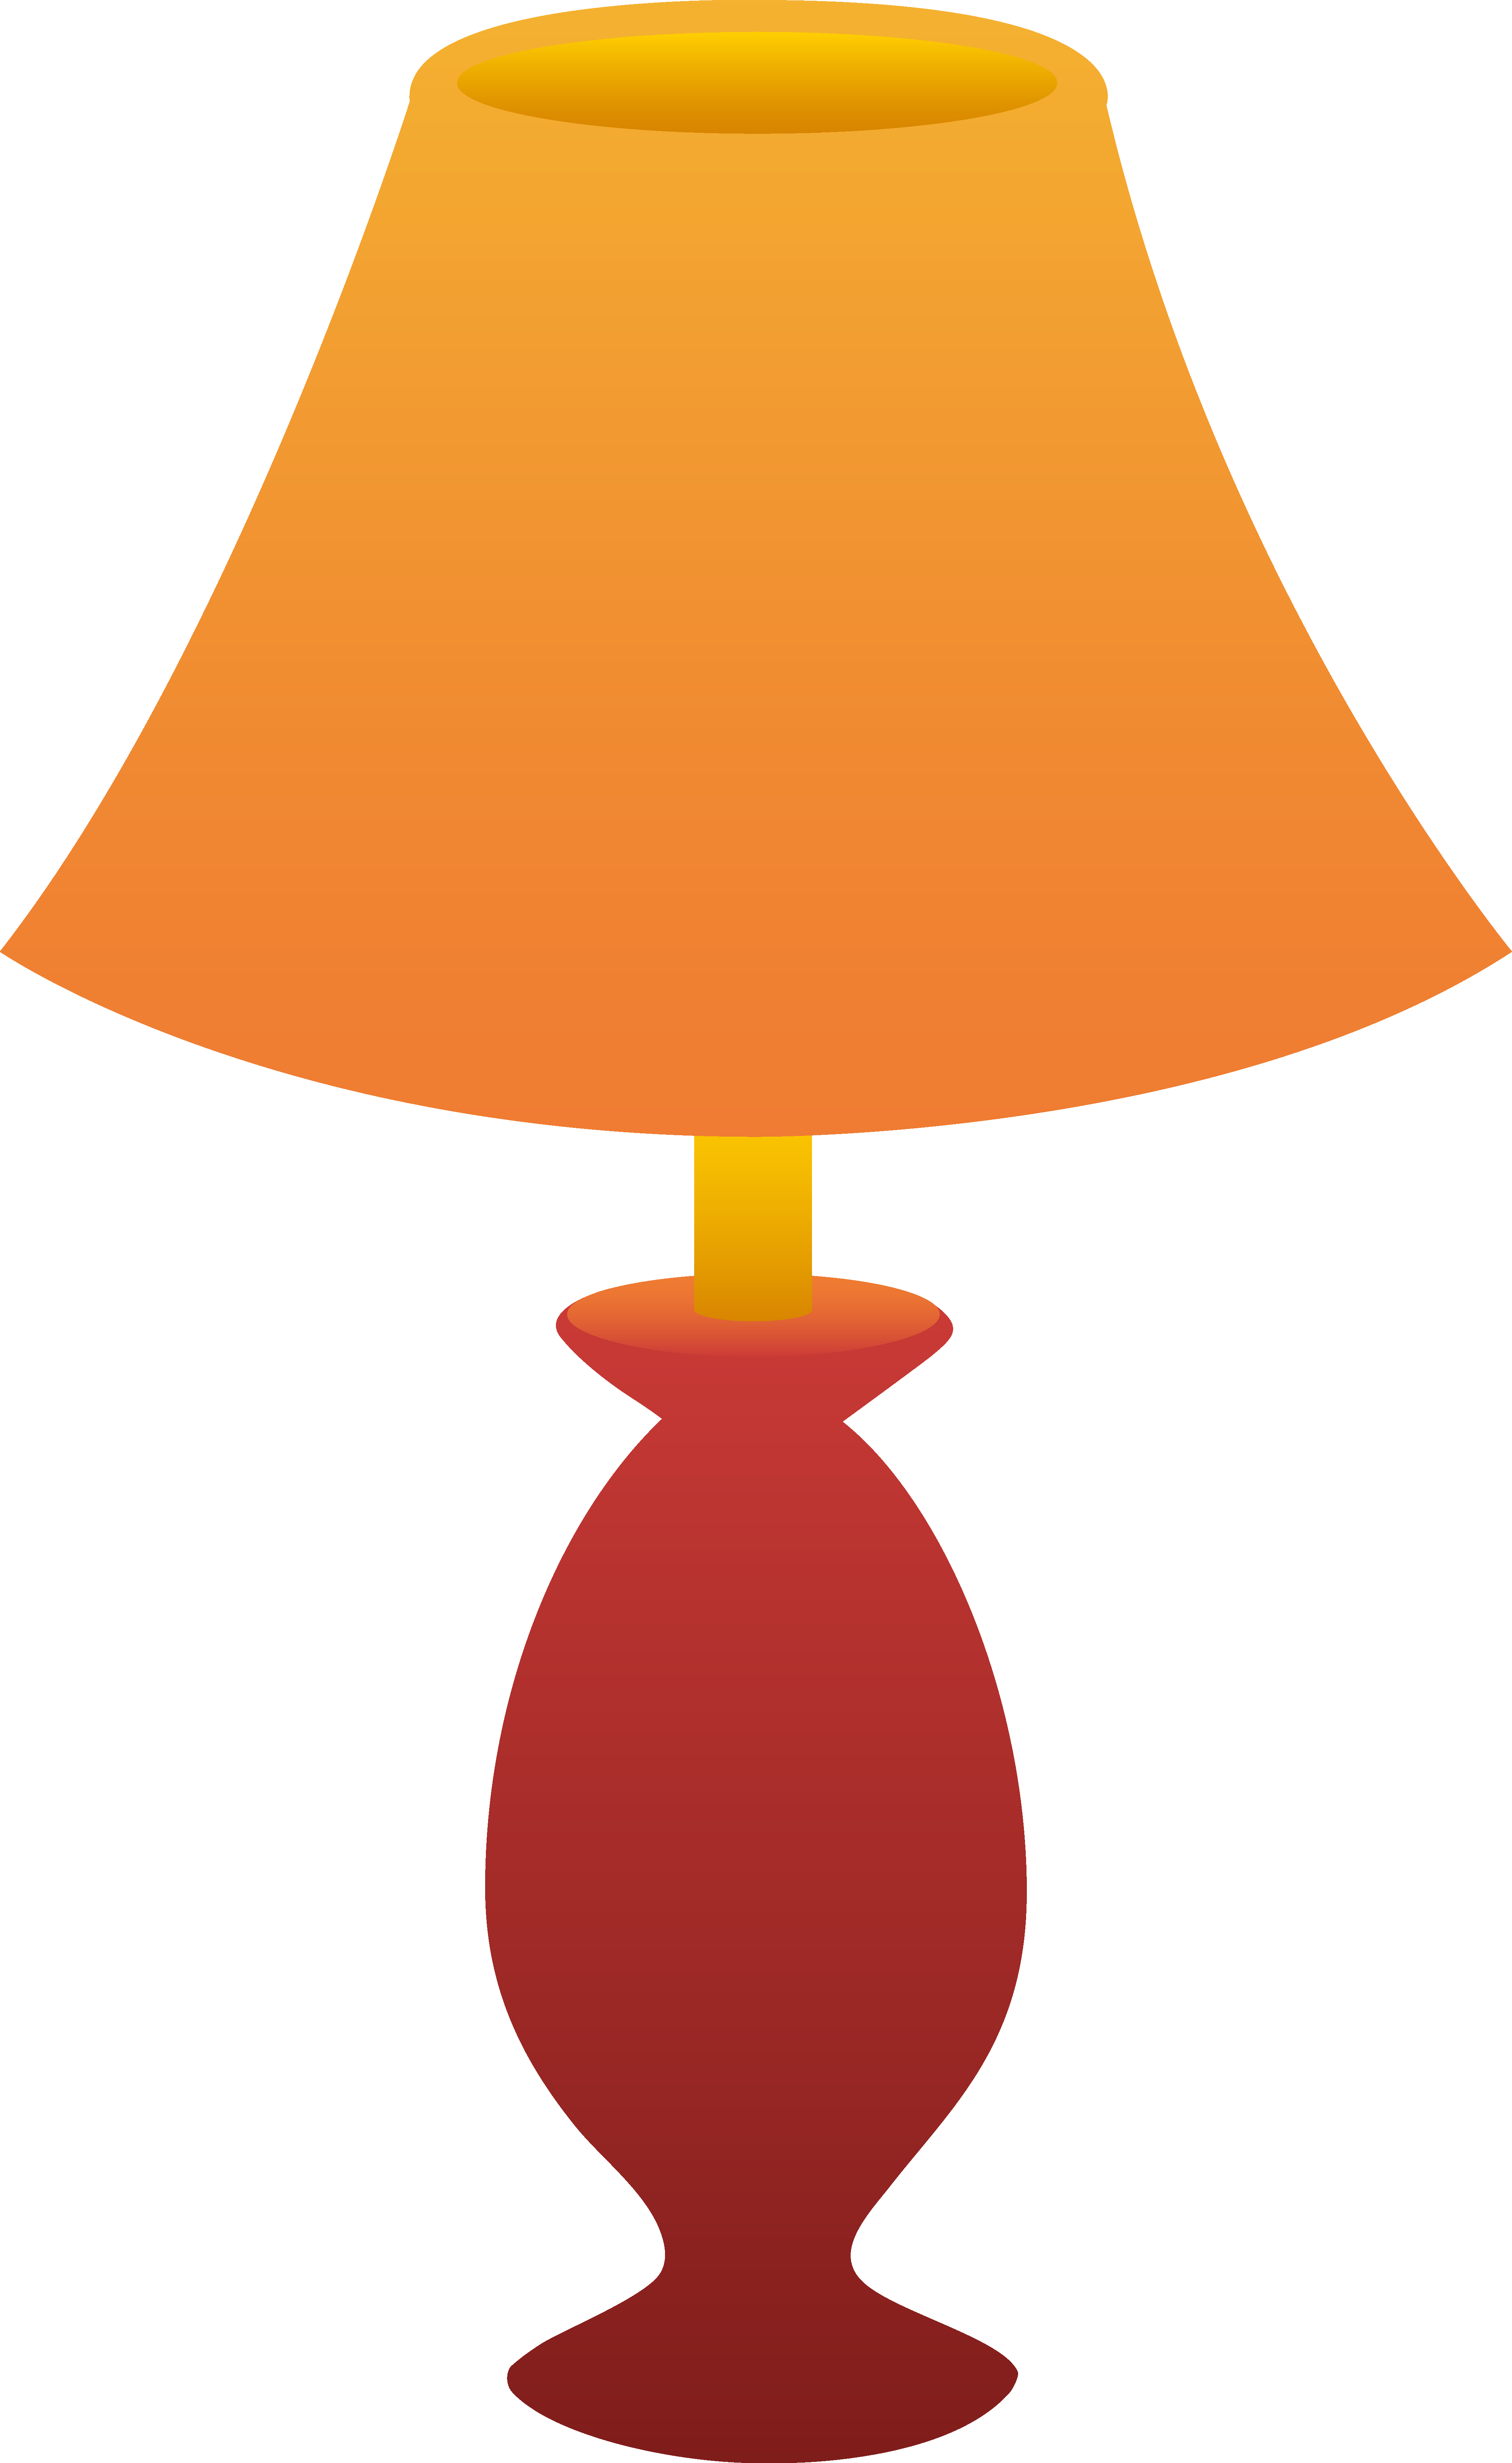 Clip spring lamp shade. Collection of free student